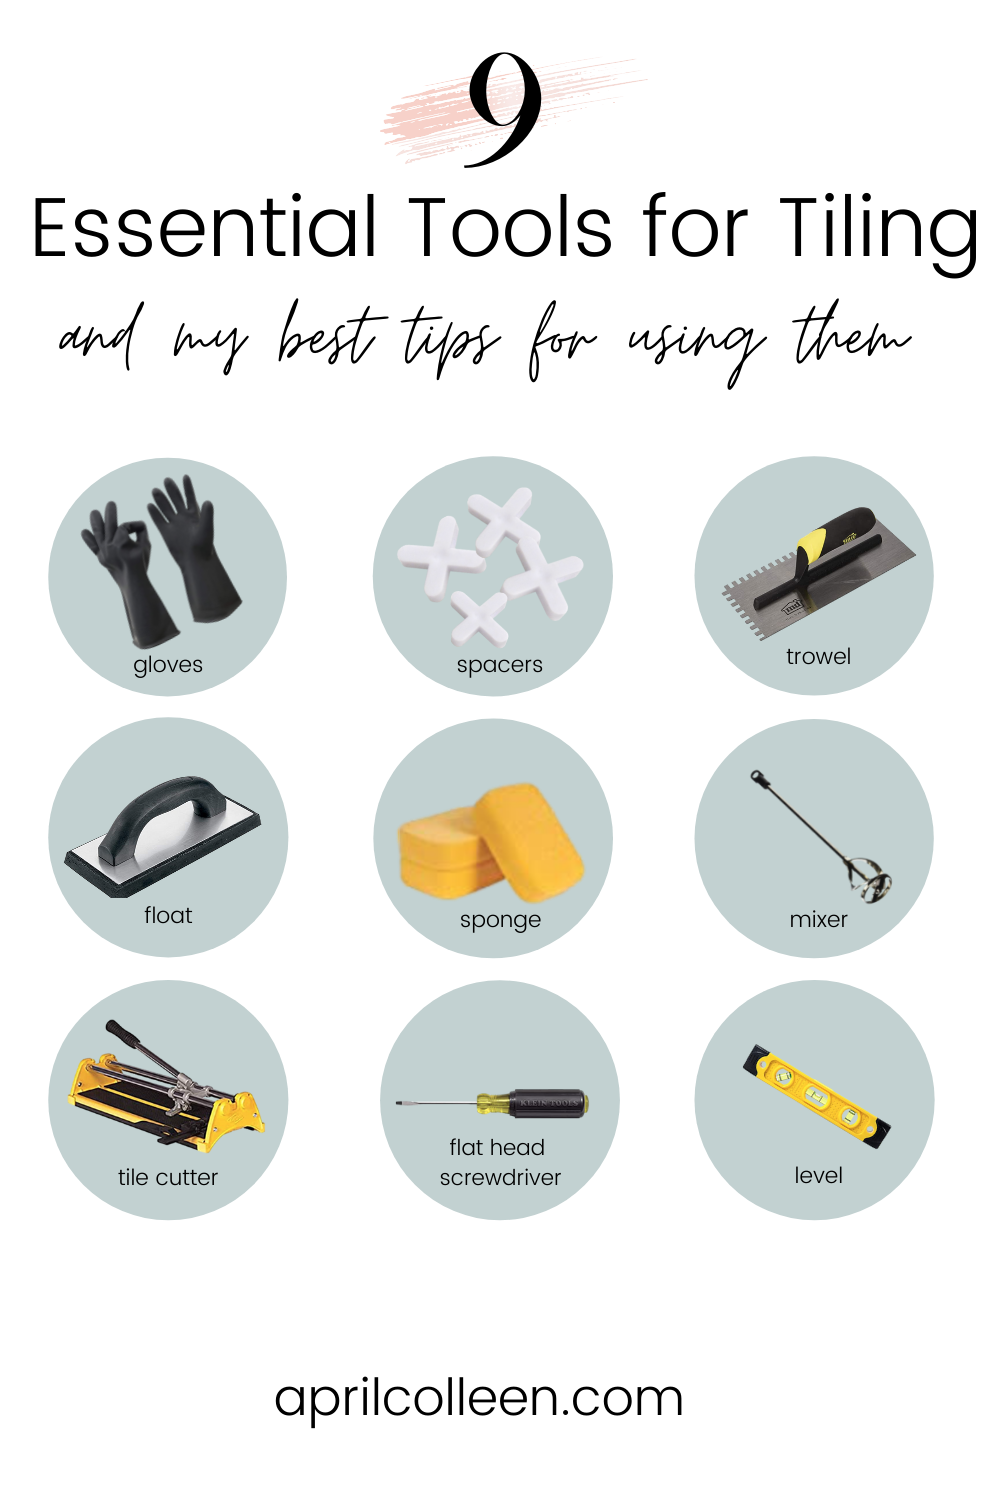 tools you need for tiling